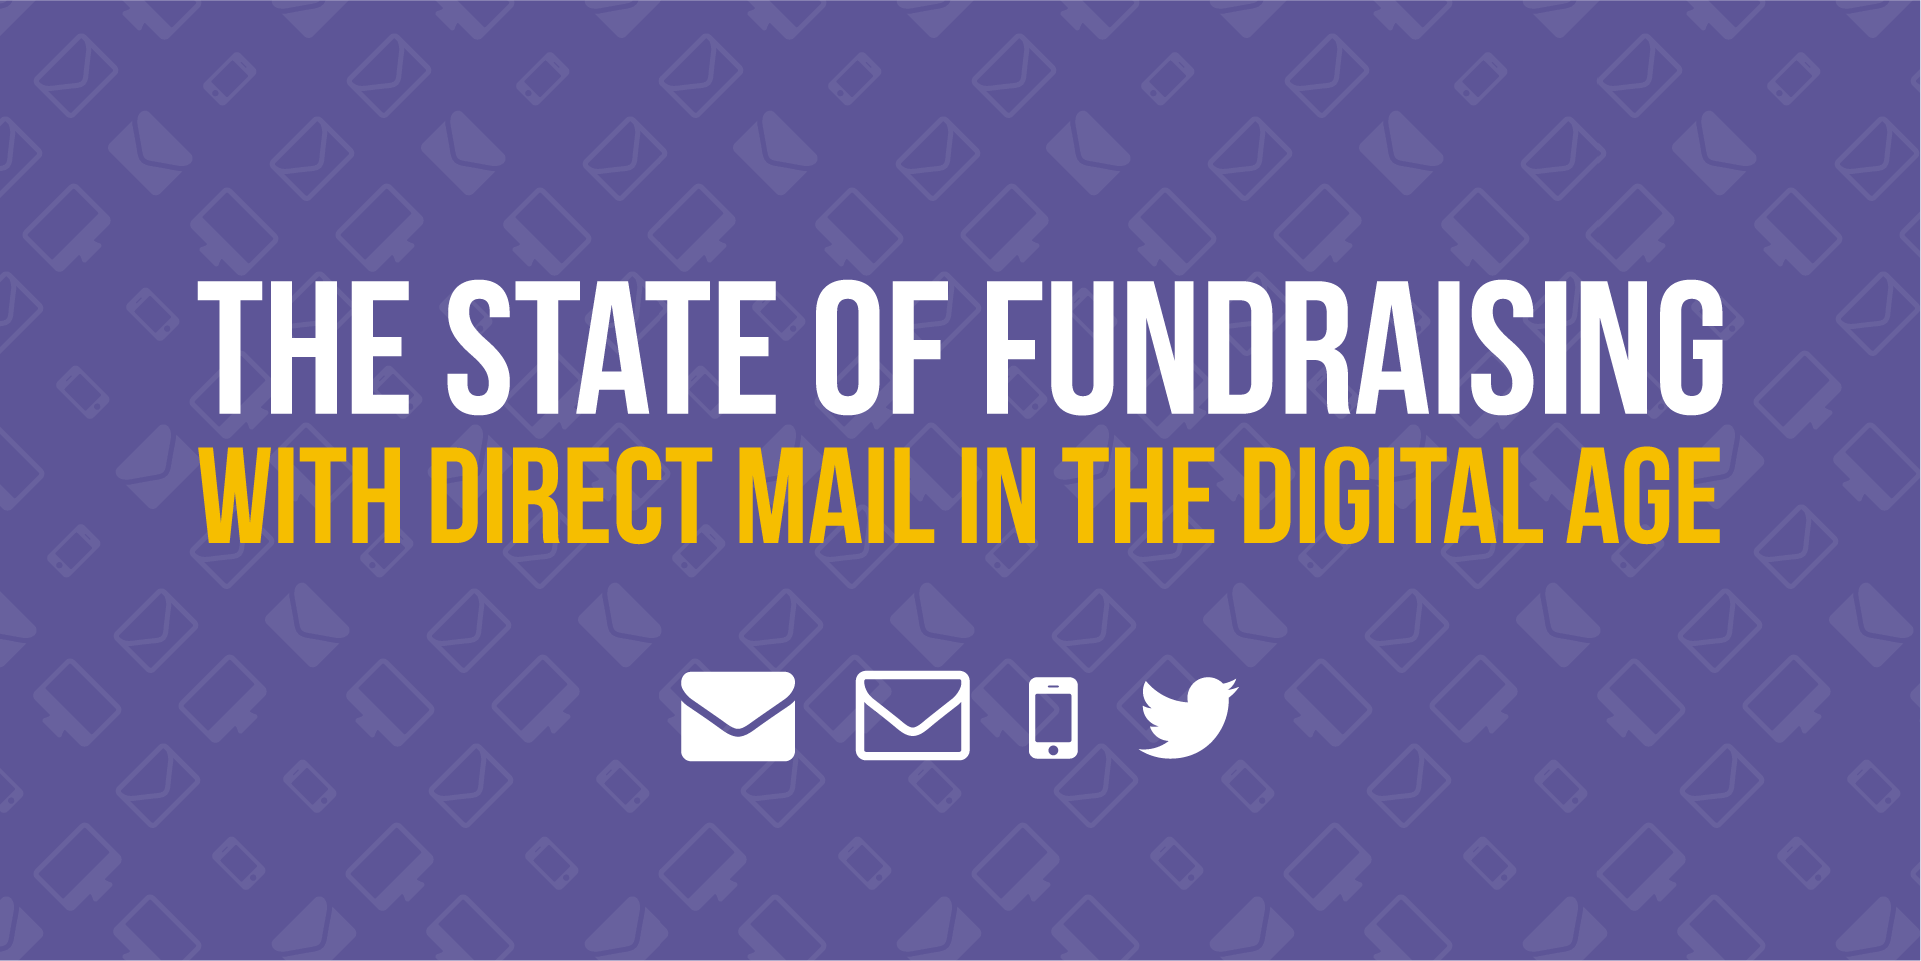 direct mail fundraising infographic